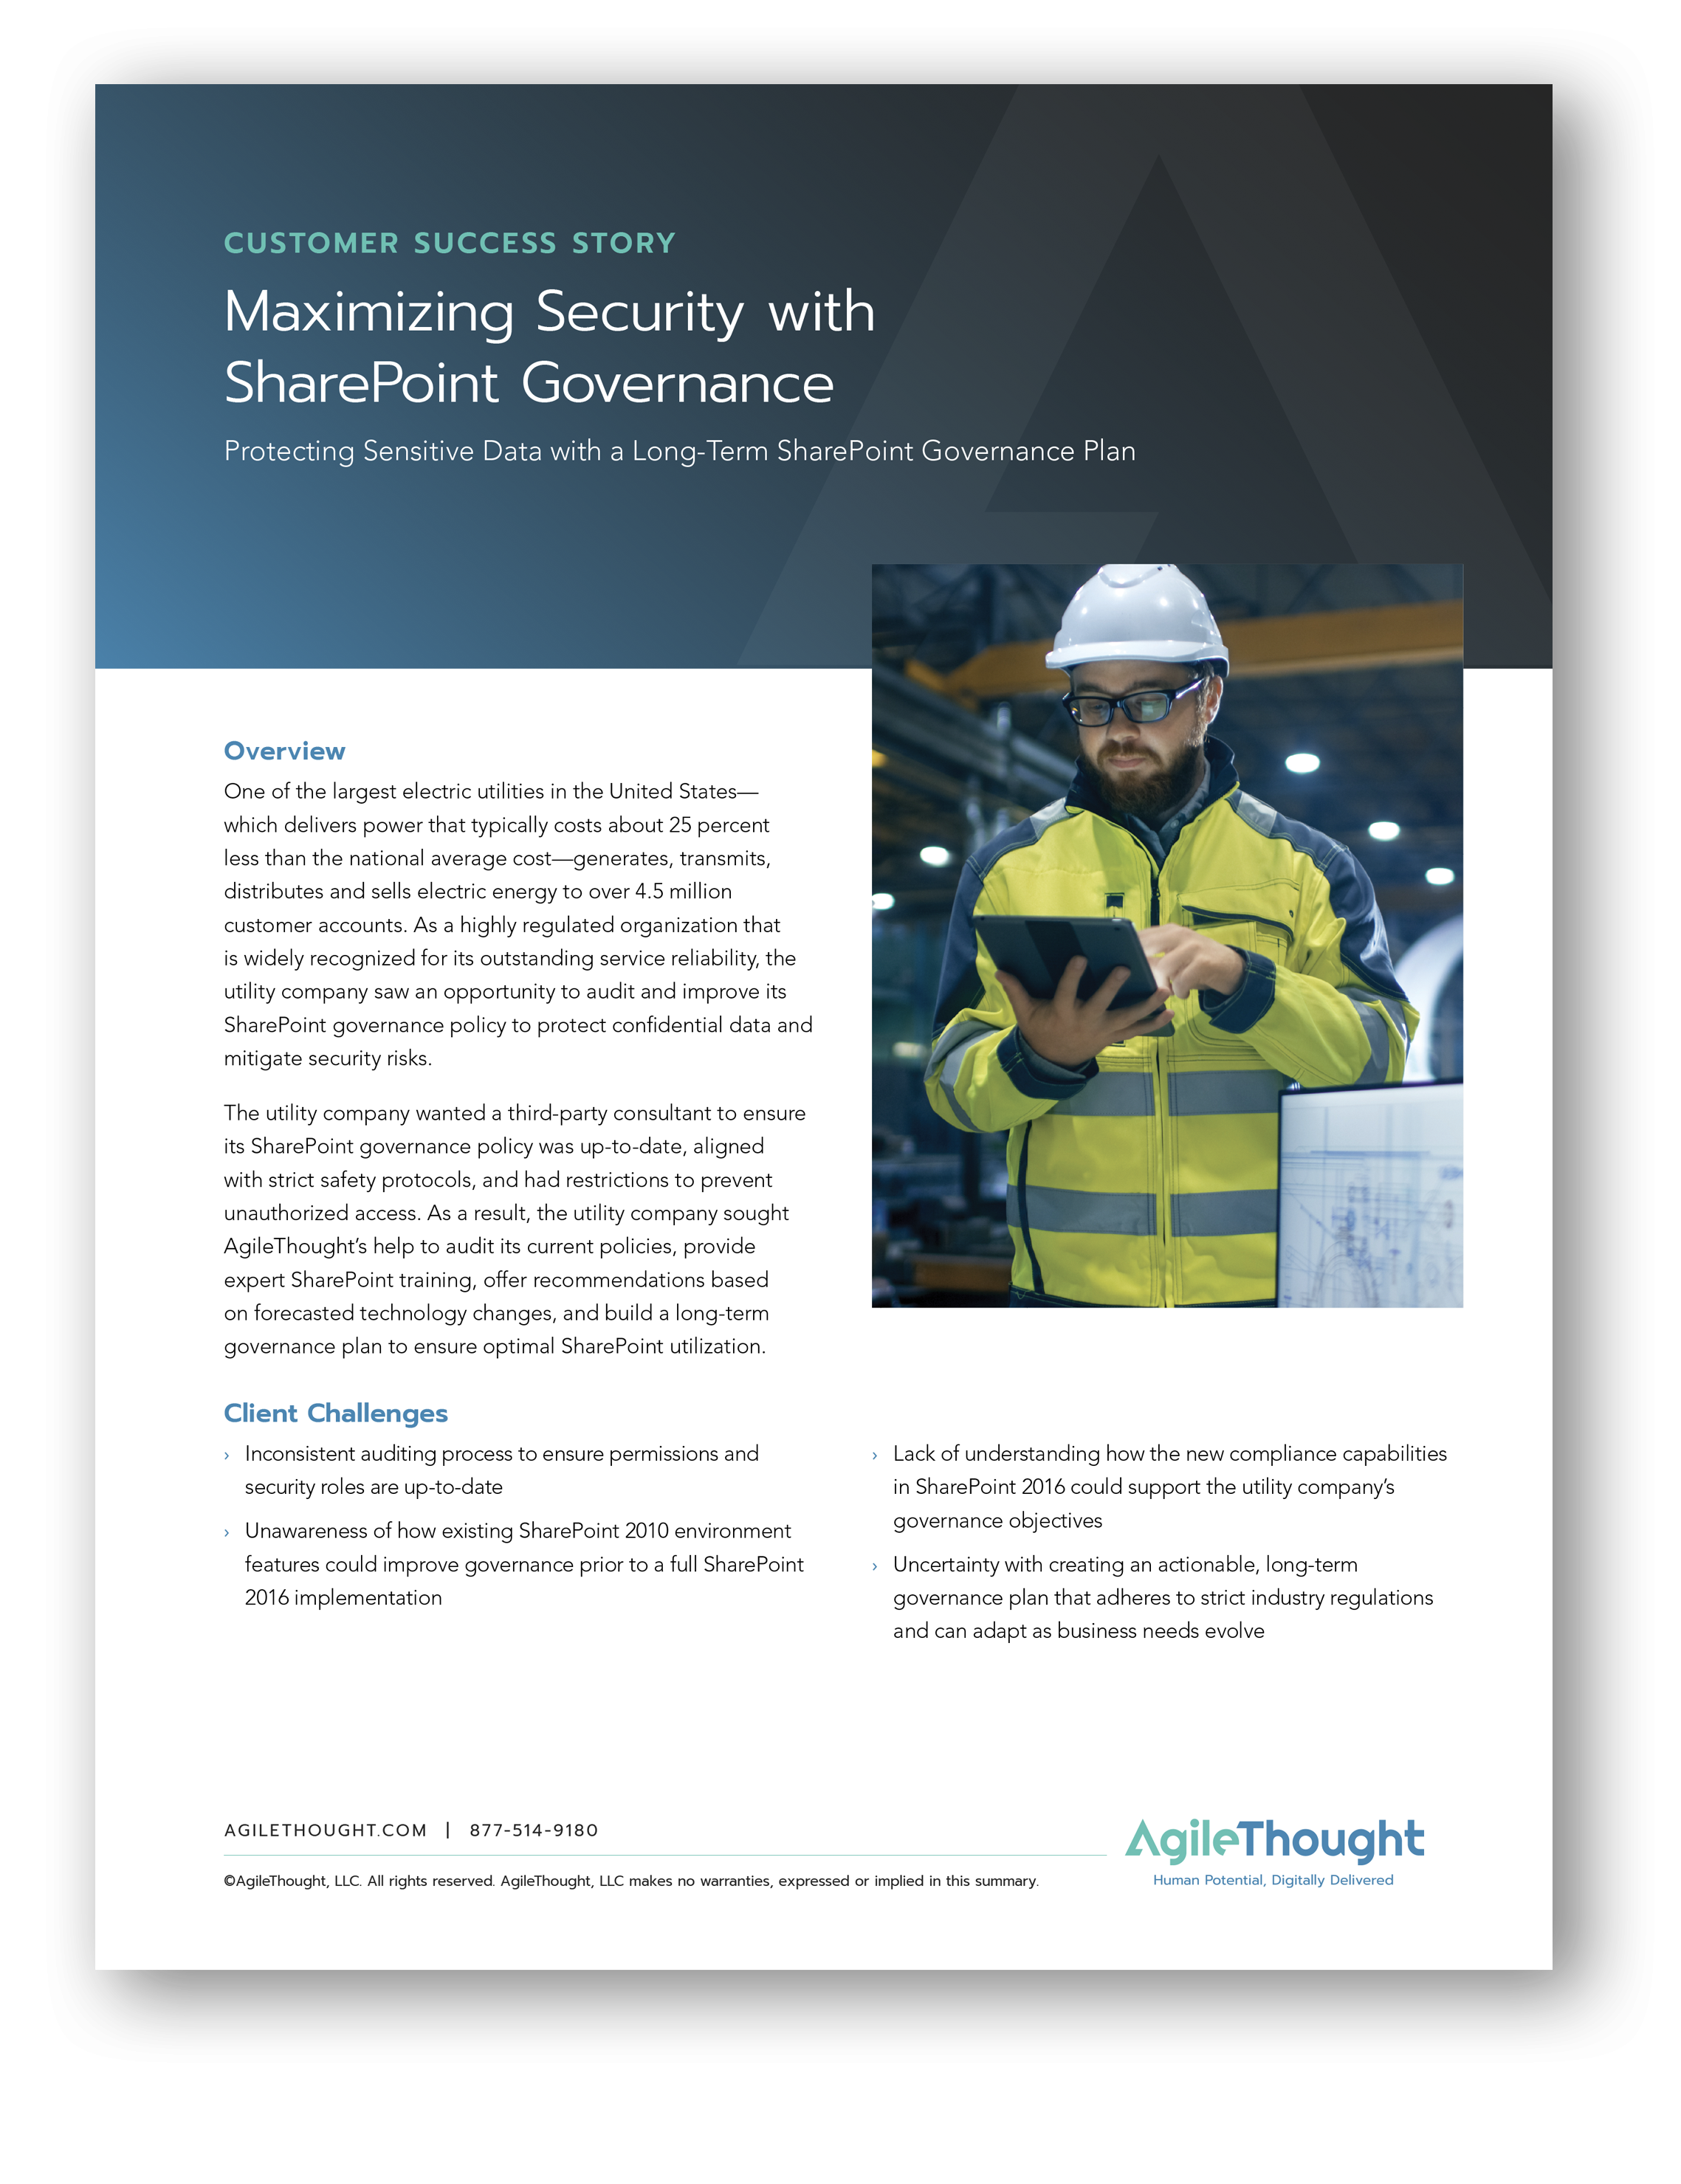 maximizing security with sharepoint governance